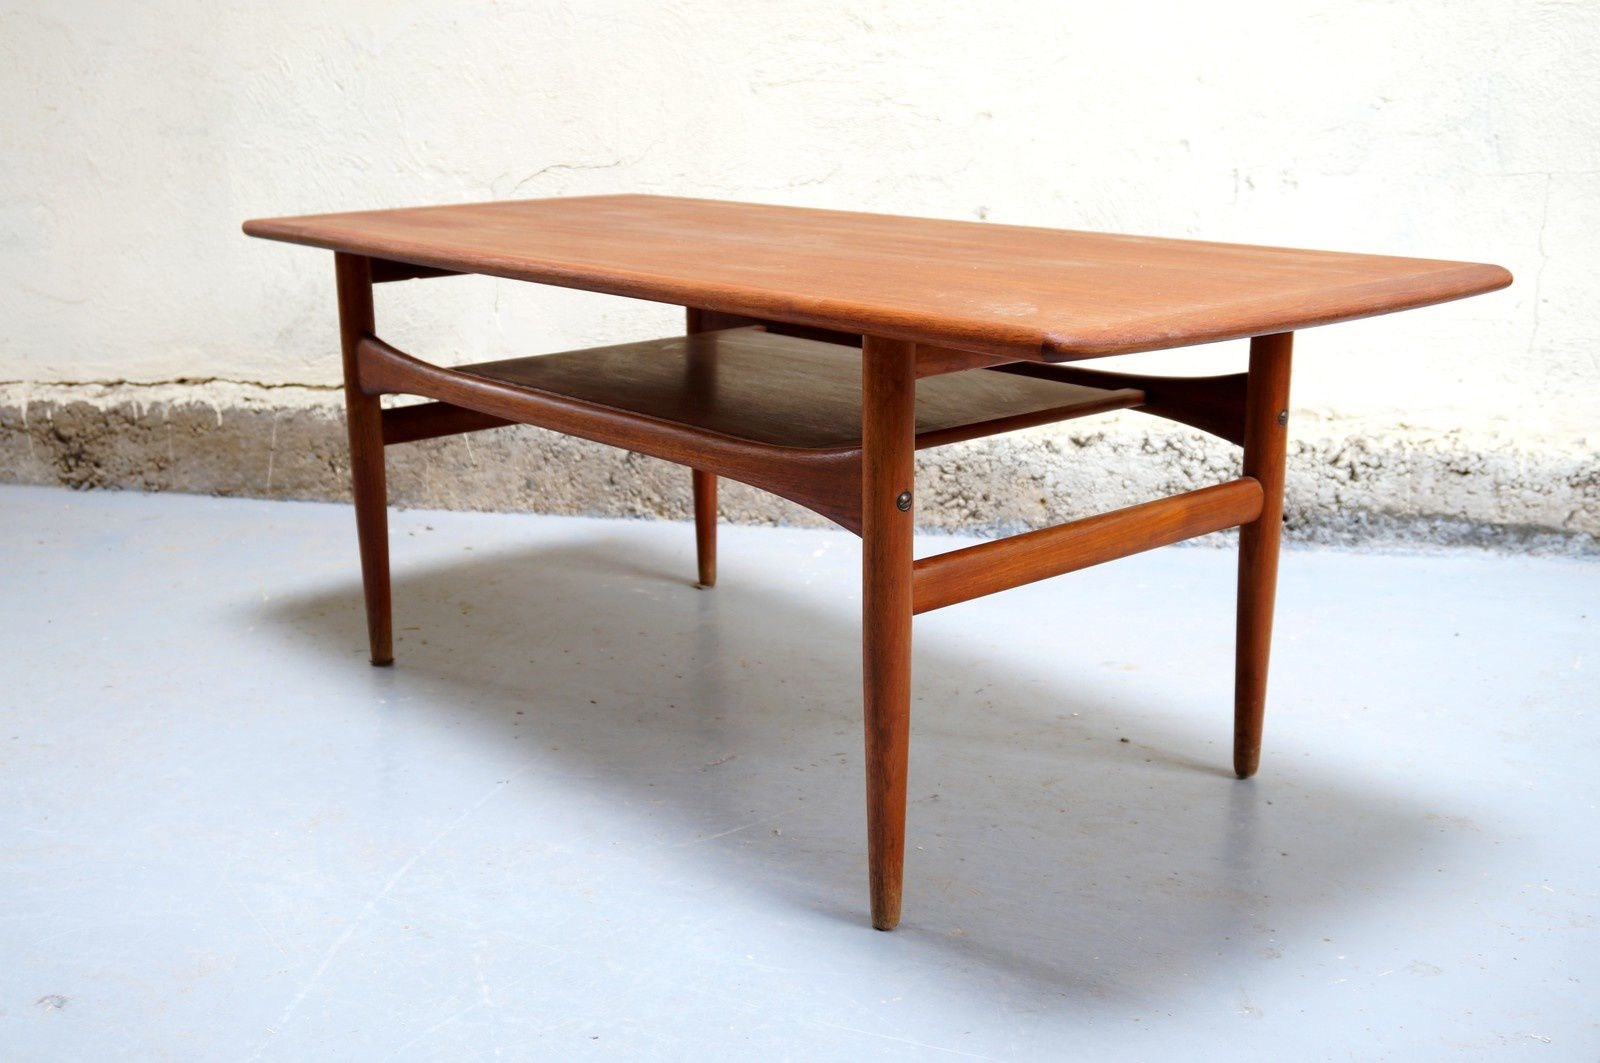 Table basse scandinave arrebo mobler danois vintage danish for Site mobilier design